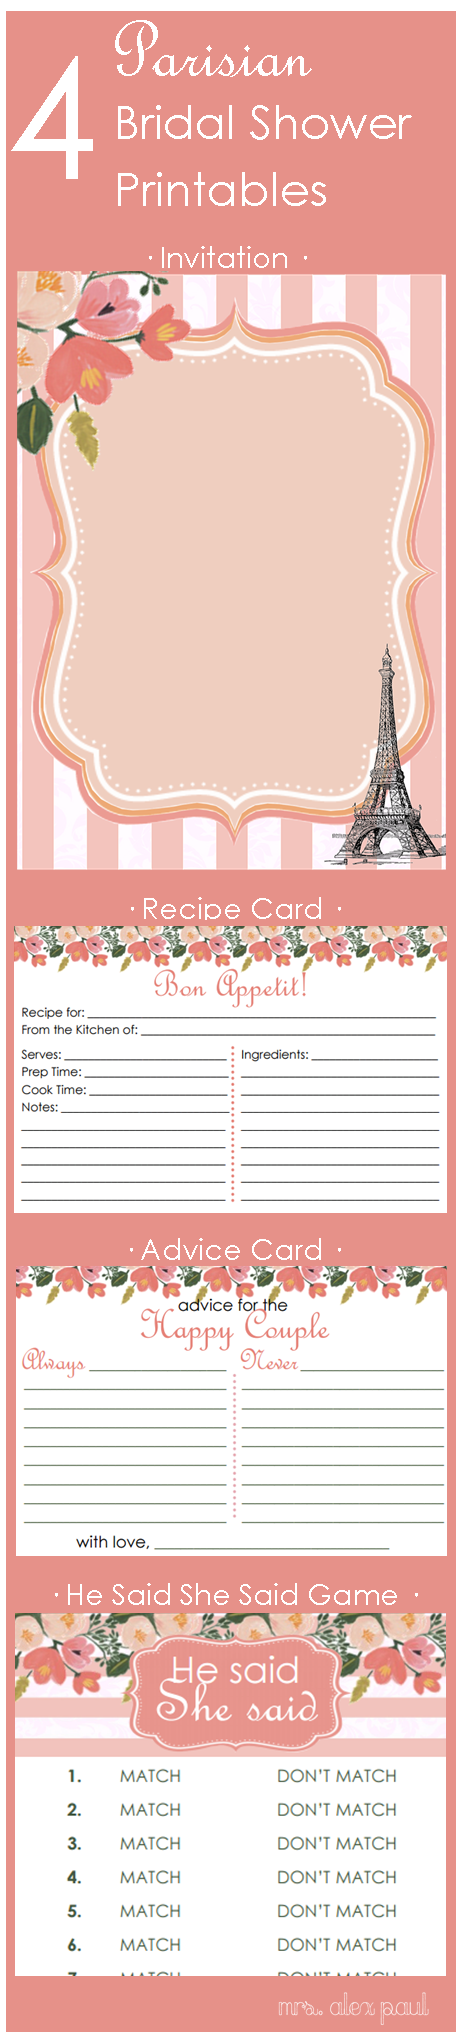 4 Parisian Bridal Shower Printables